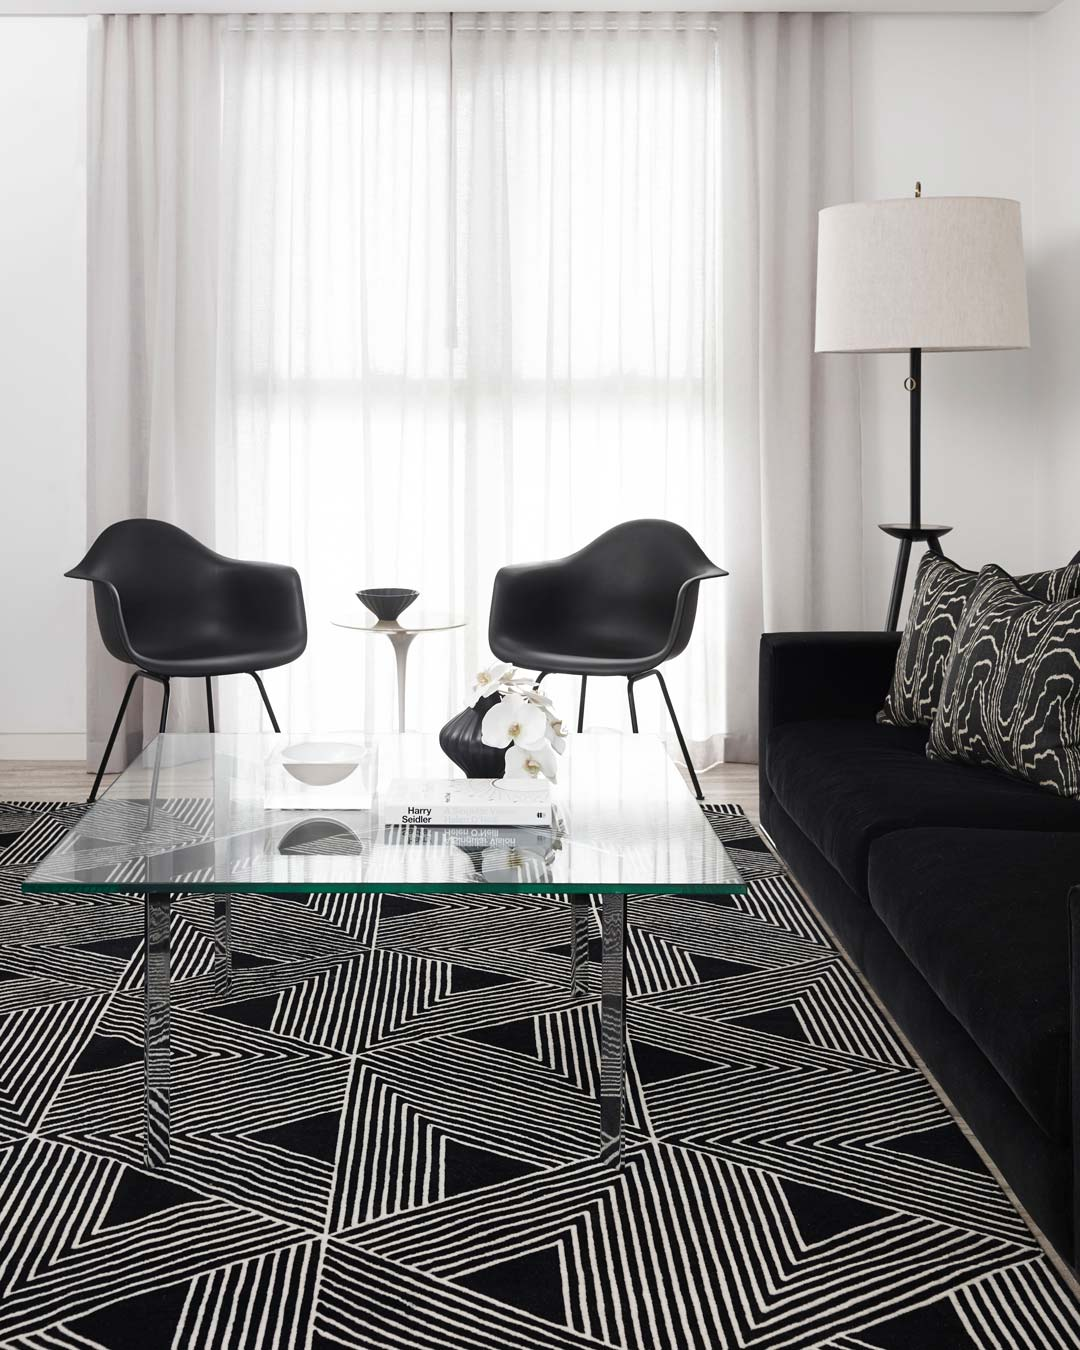 location shot of tokyo rug by greg natale white geometric lines on black background